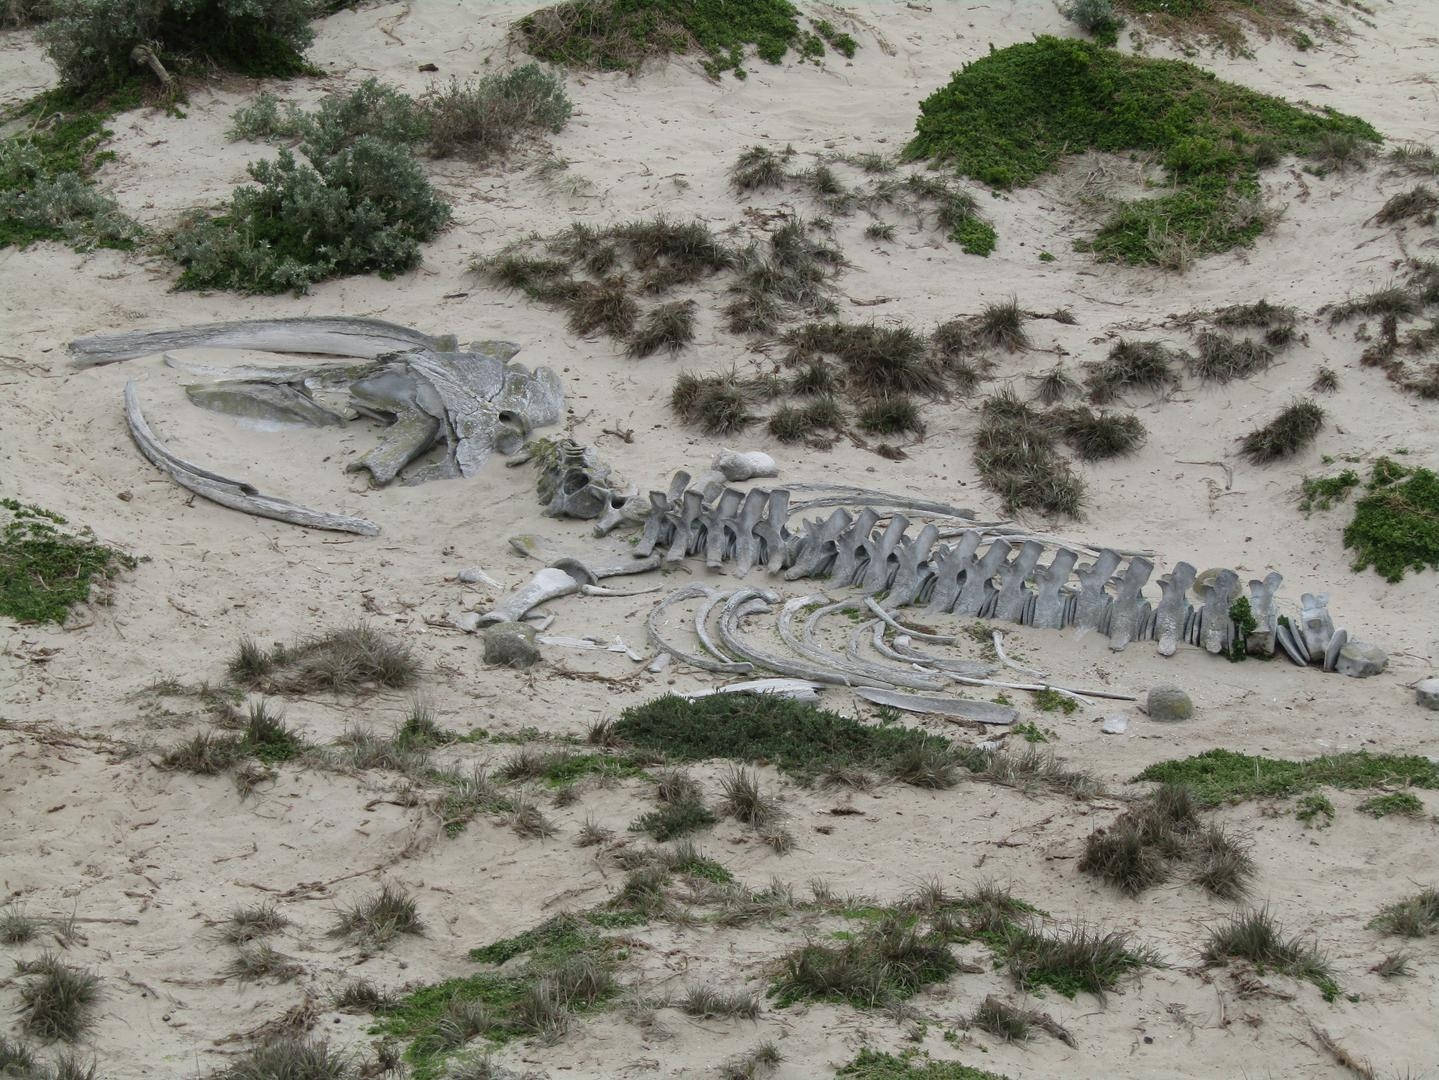 Skeleton of a juvenile humpback whale washed up in a storm long ago